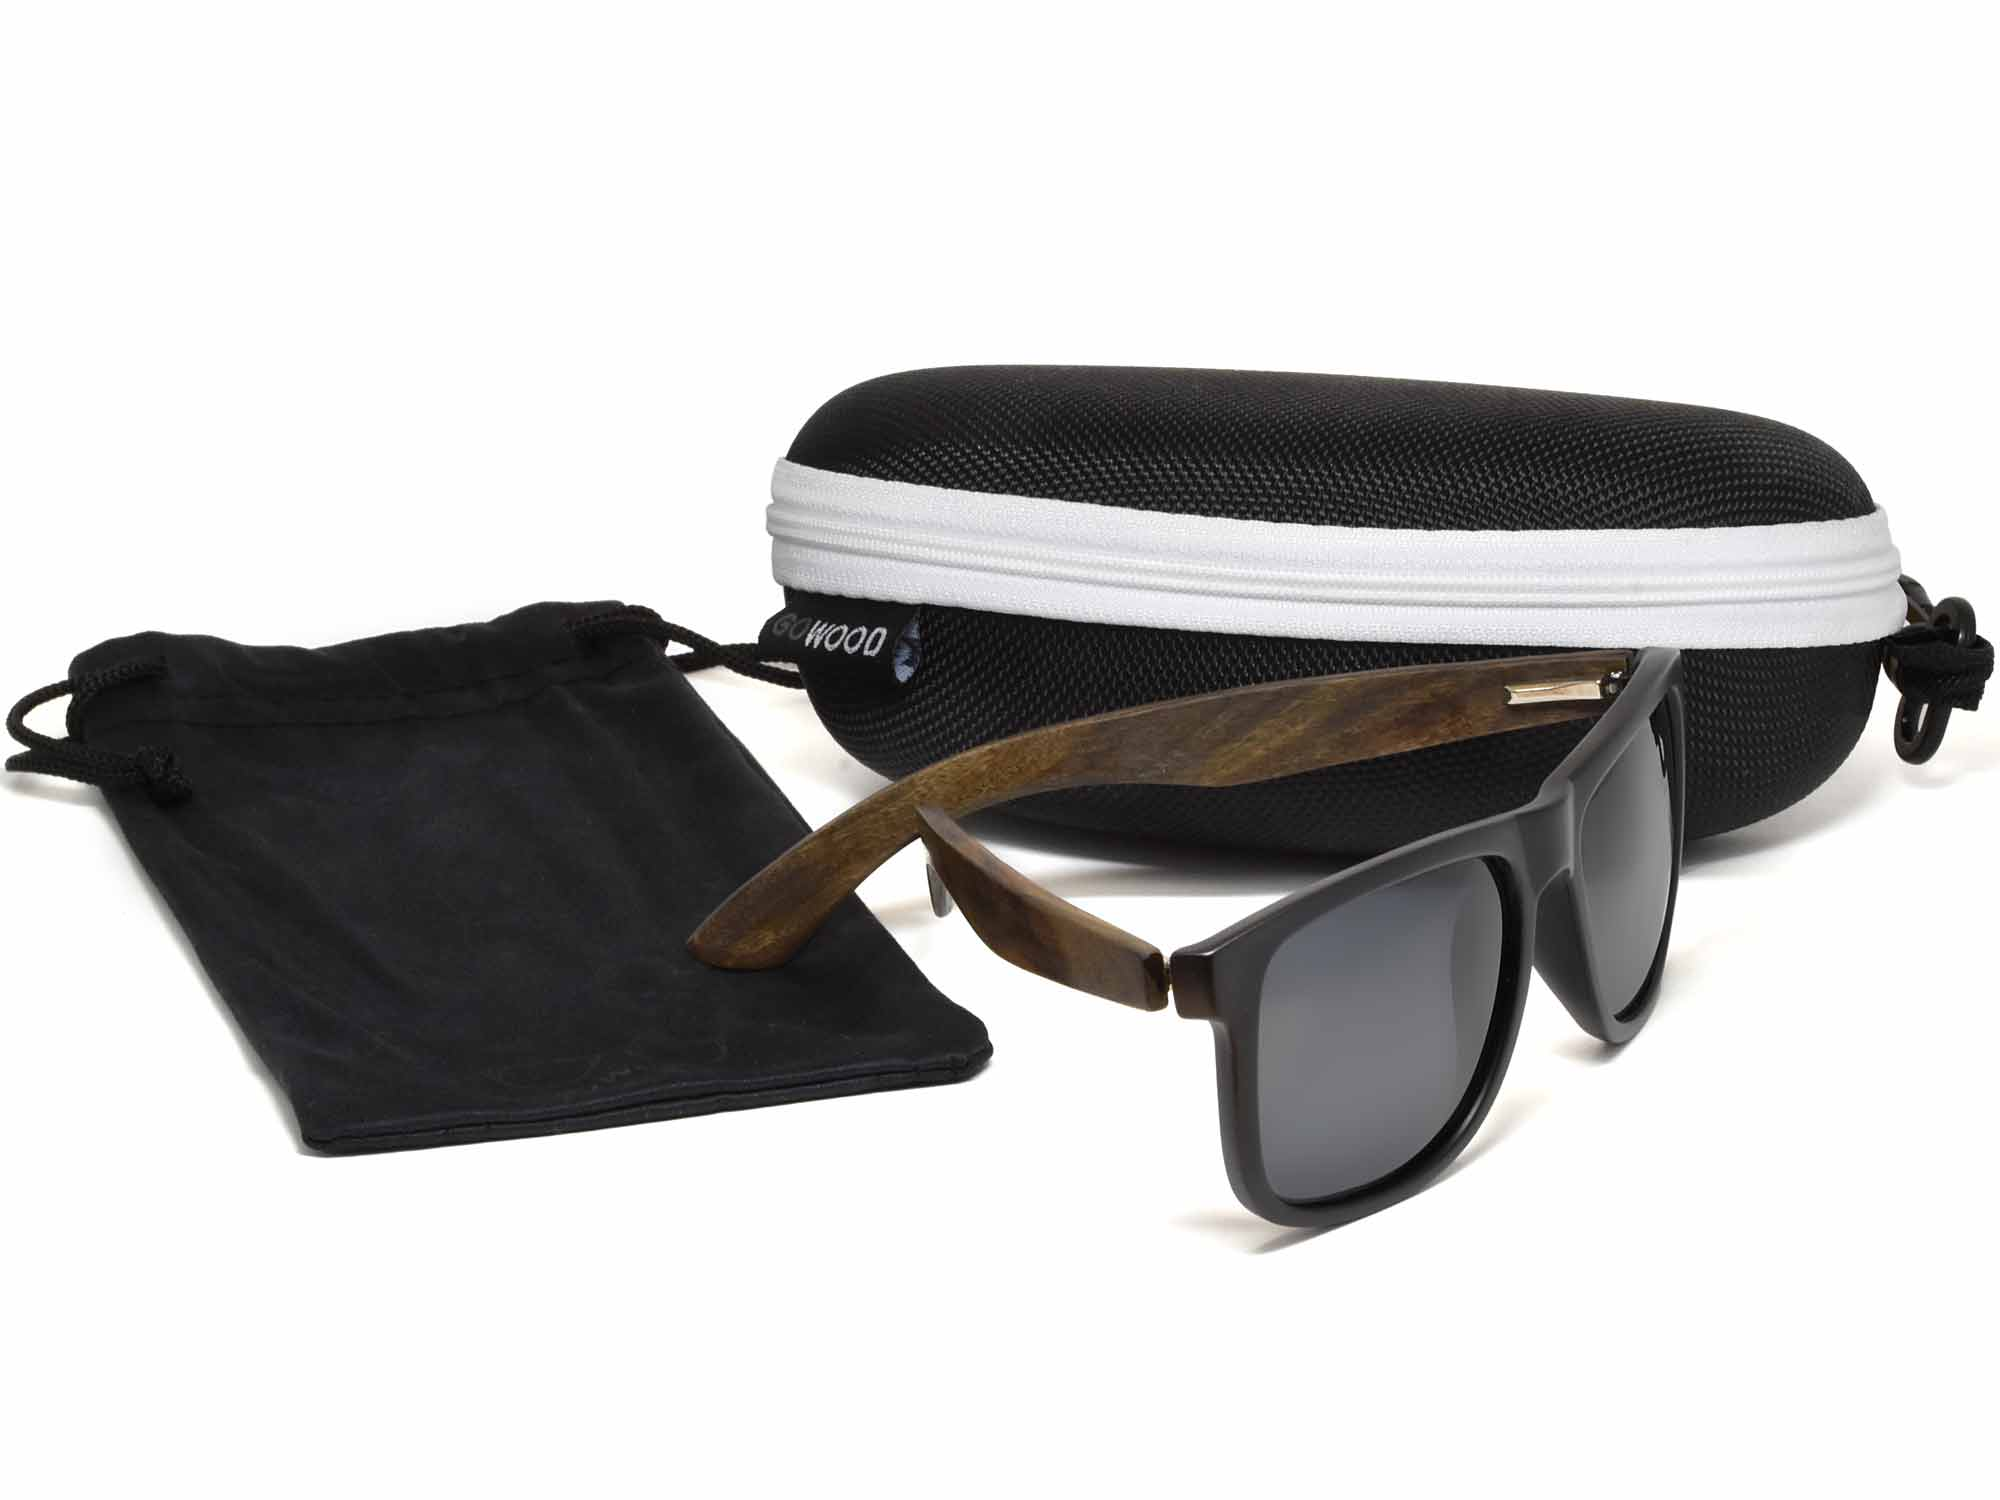 Square ebony wood sunglasses with black polarized lenses in zipper case set